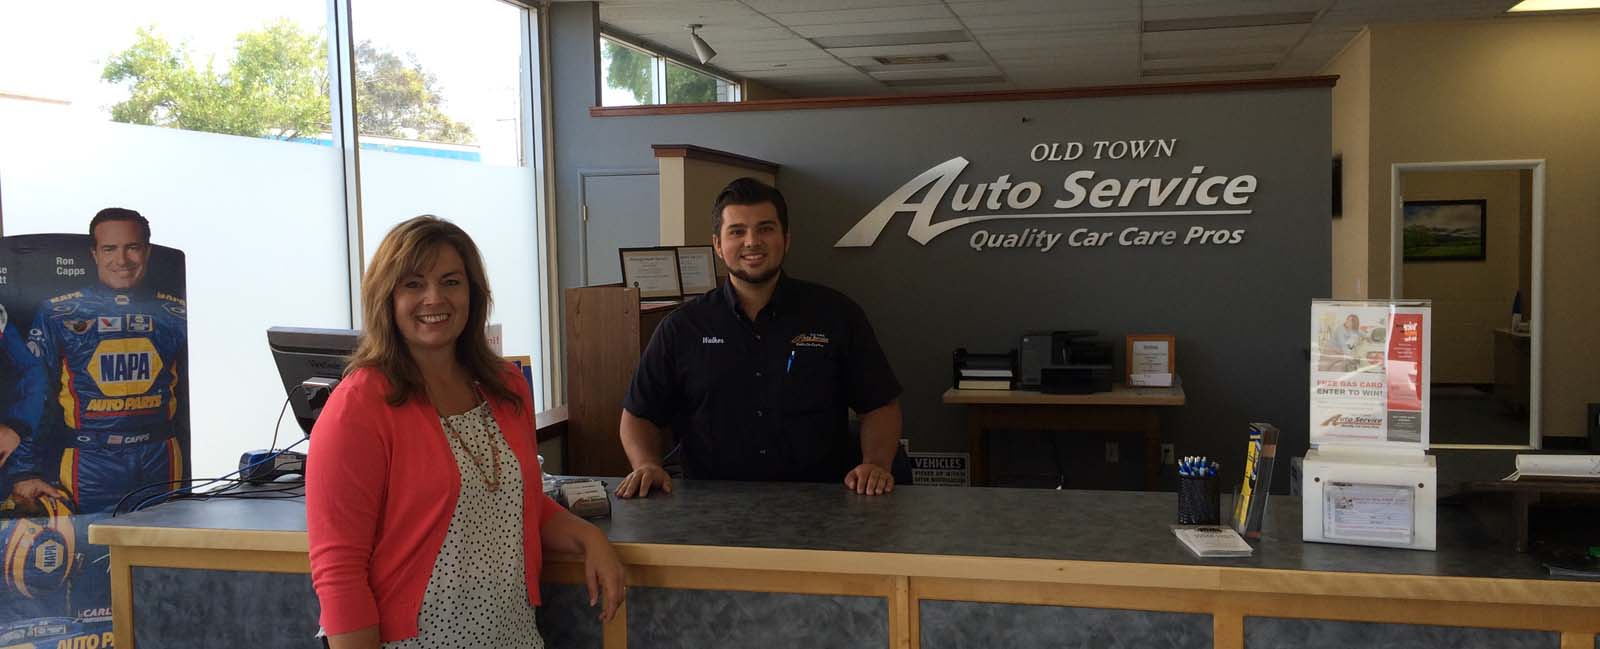 Old Town Auto Service Quality Auto Repair In Eureka Ca